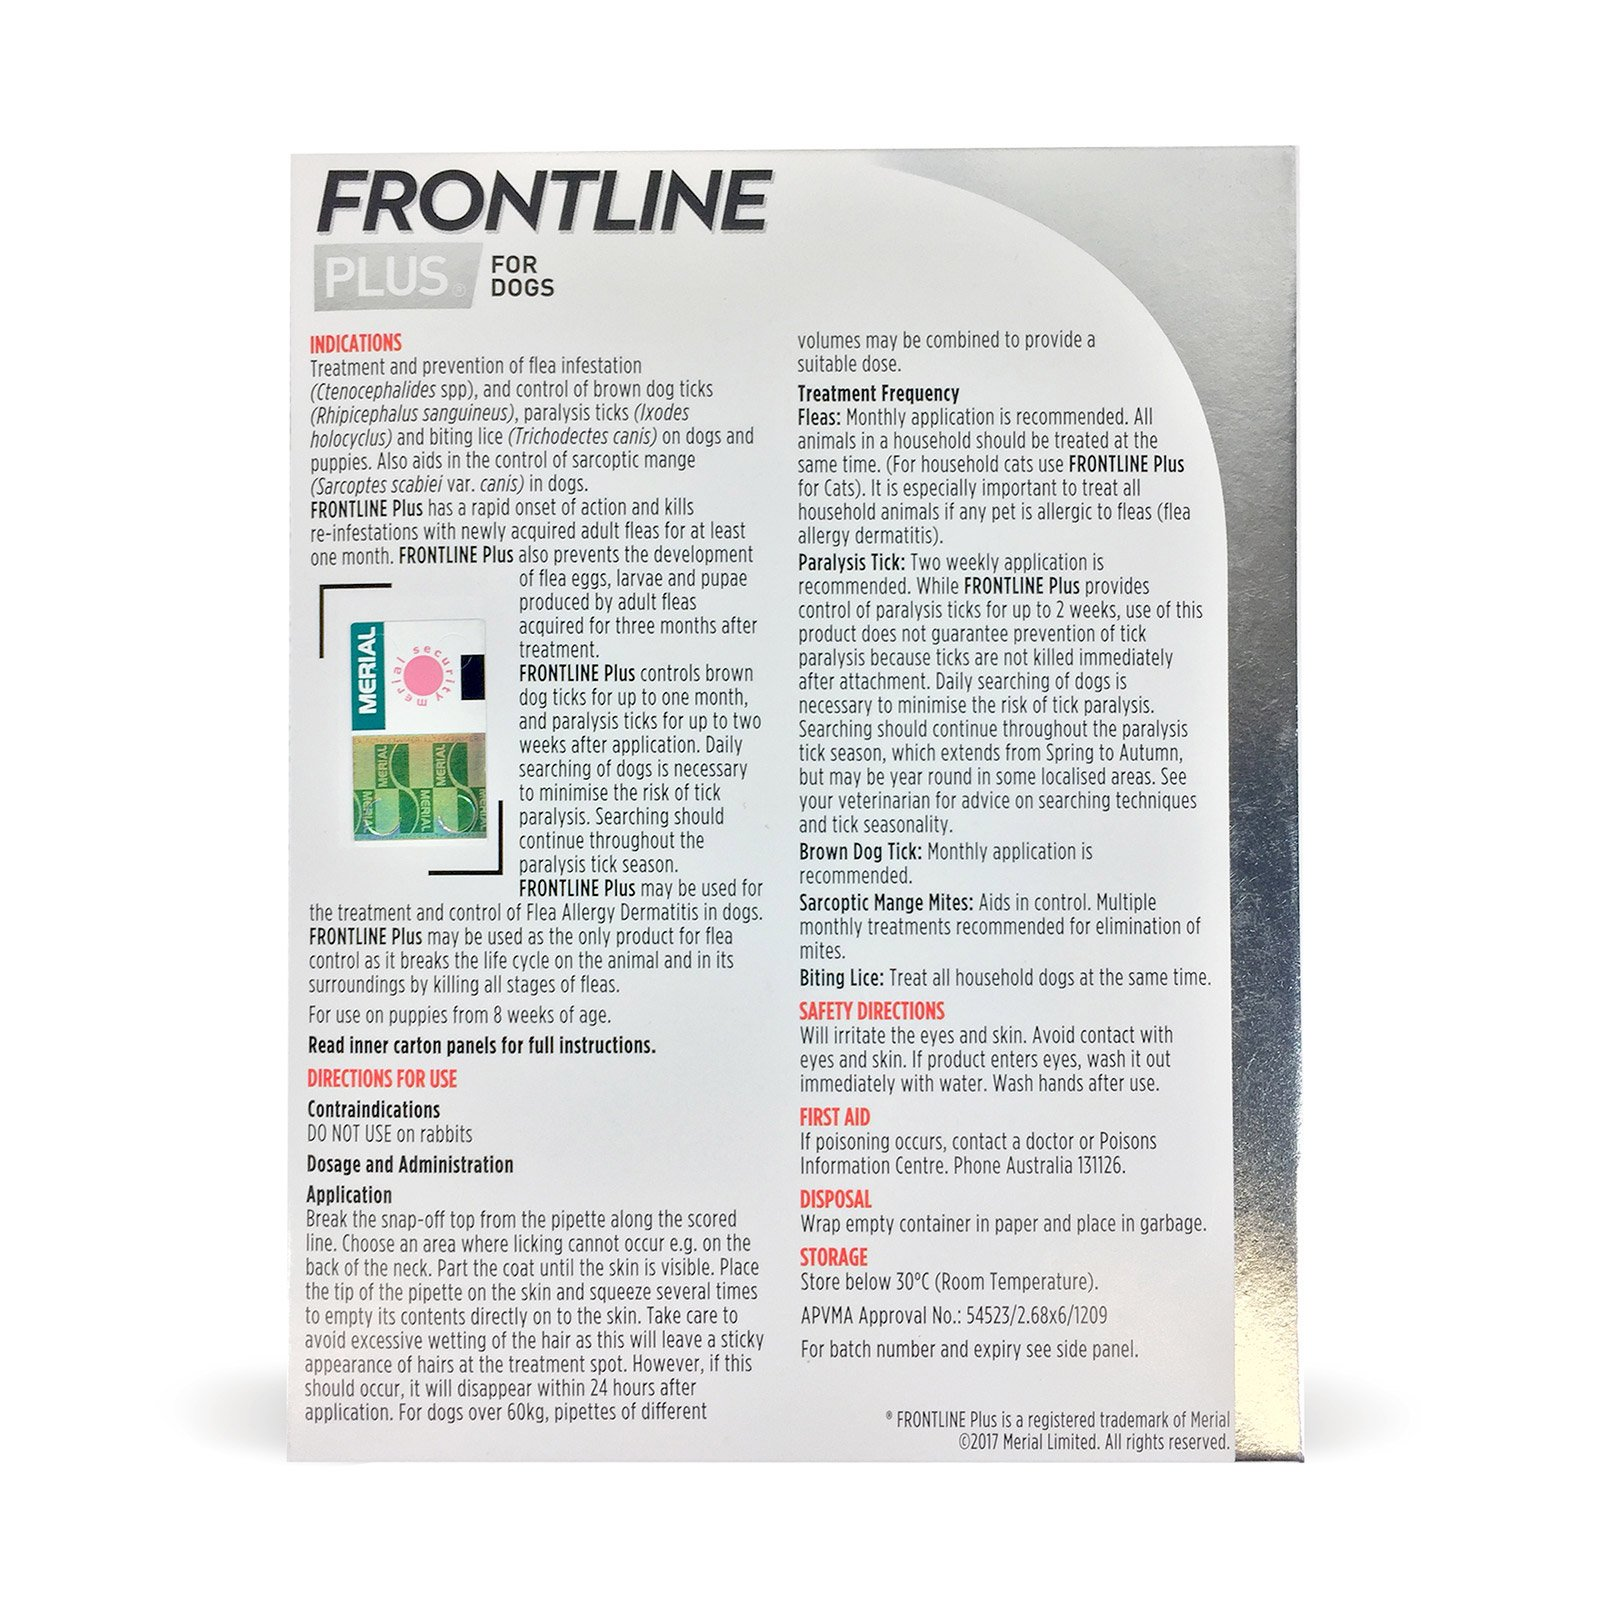 frontline-plus-for-large-dogs-20-to-40-kg-purple-back.jpg